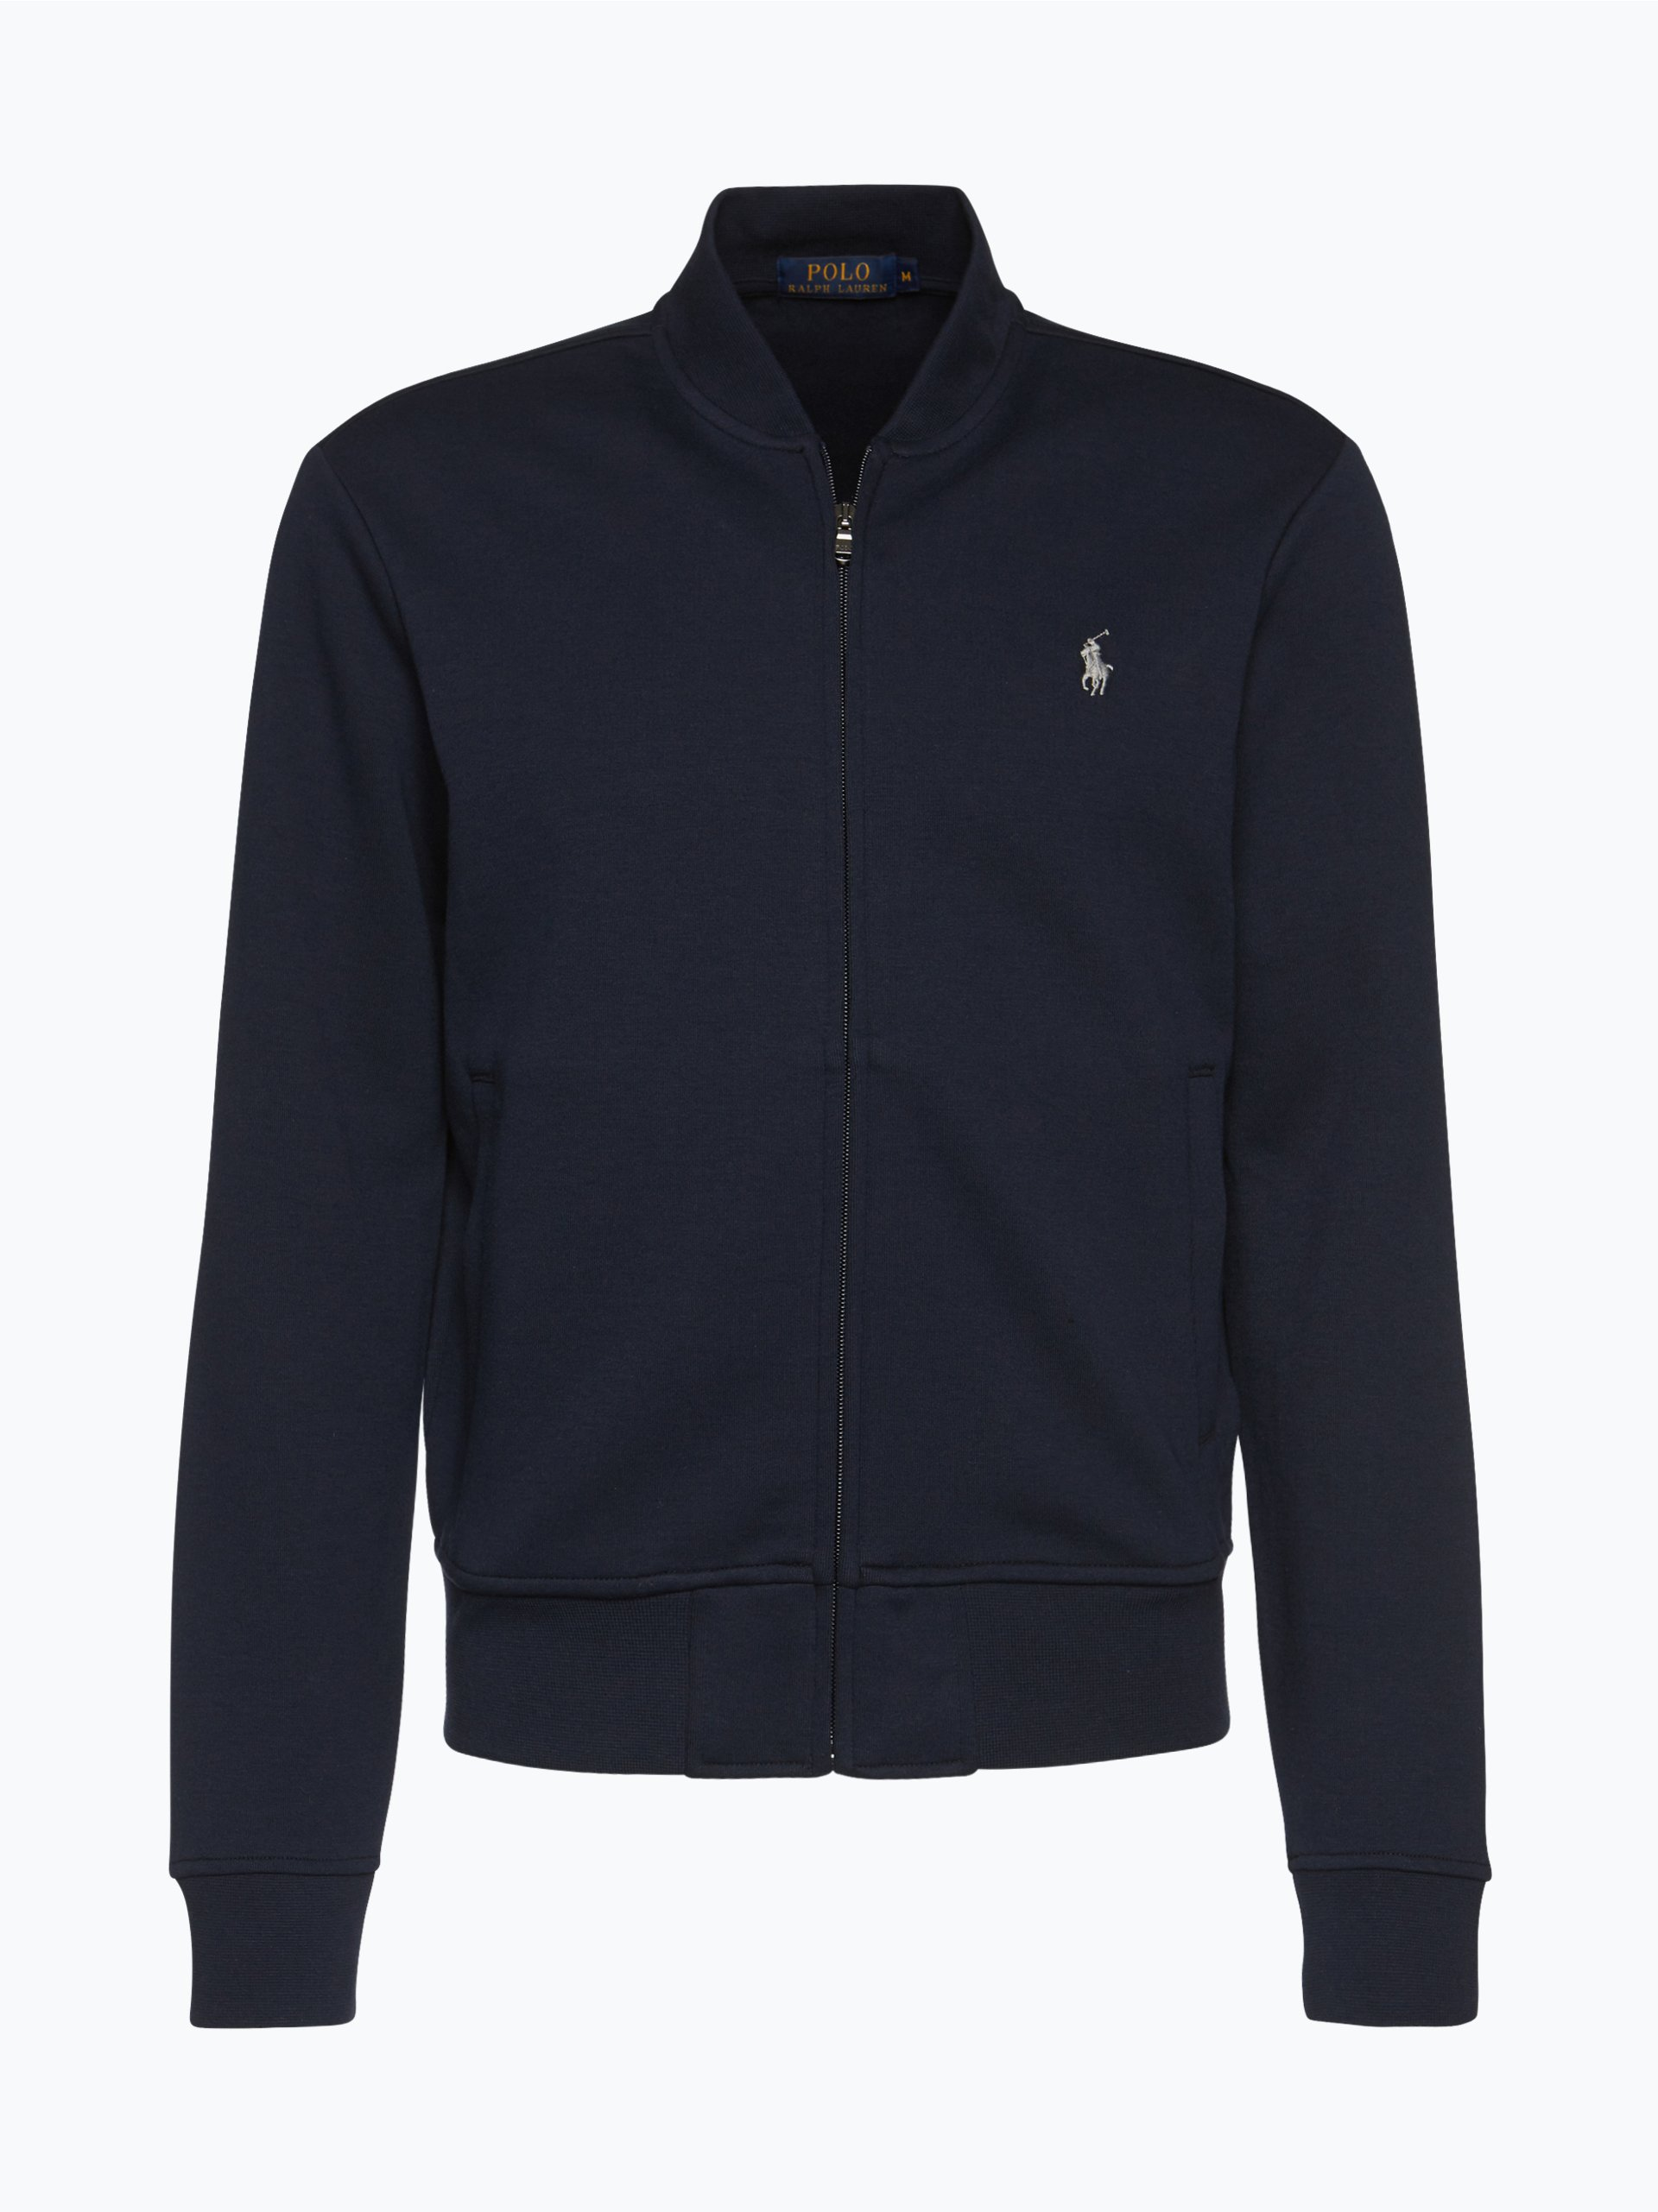 polo ralph lauren herren sweatshirt marine uni online. Black Bedroom Furniture Sets. Home Design Ideas